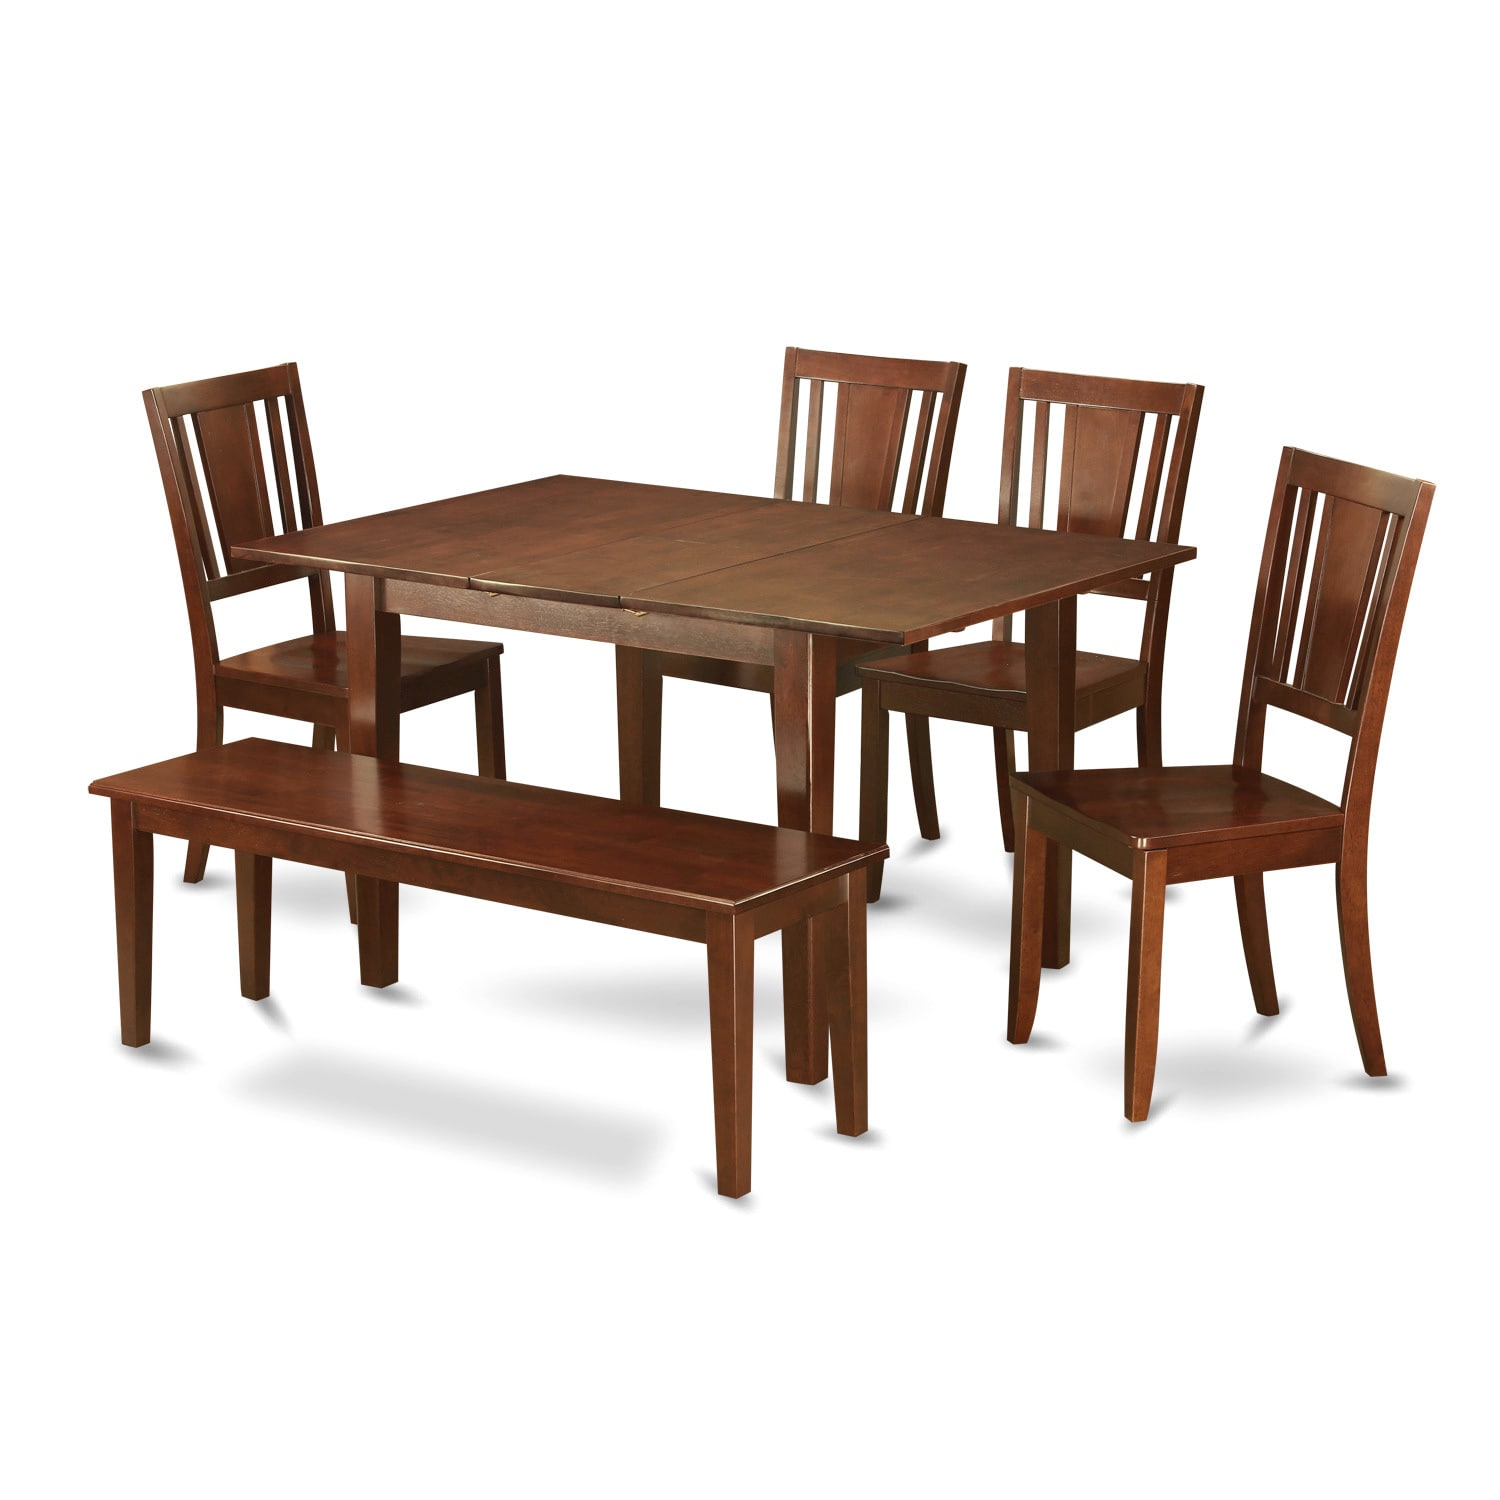 Brown Rubberwood 6-piece Dining Table Set with Dining Ben...